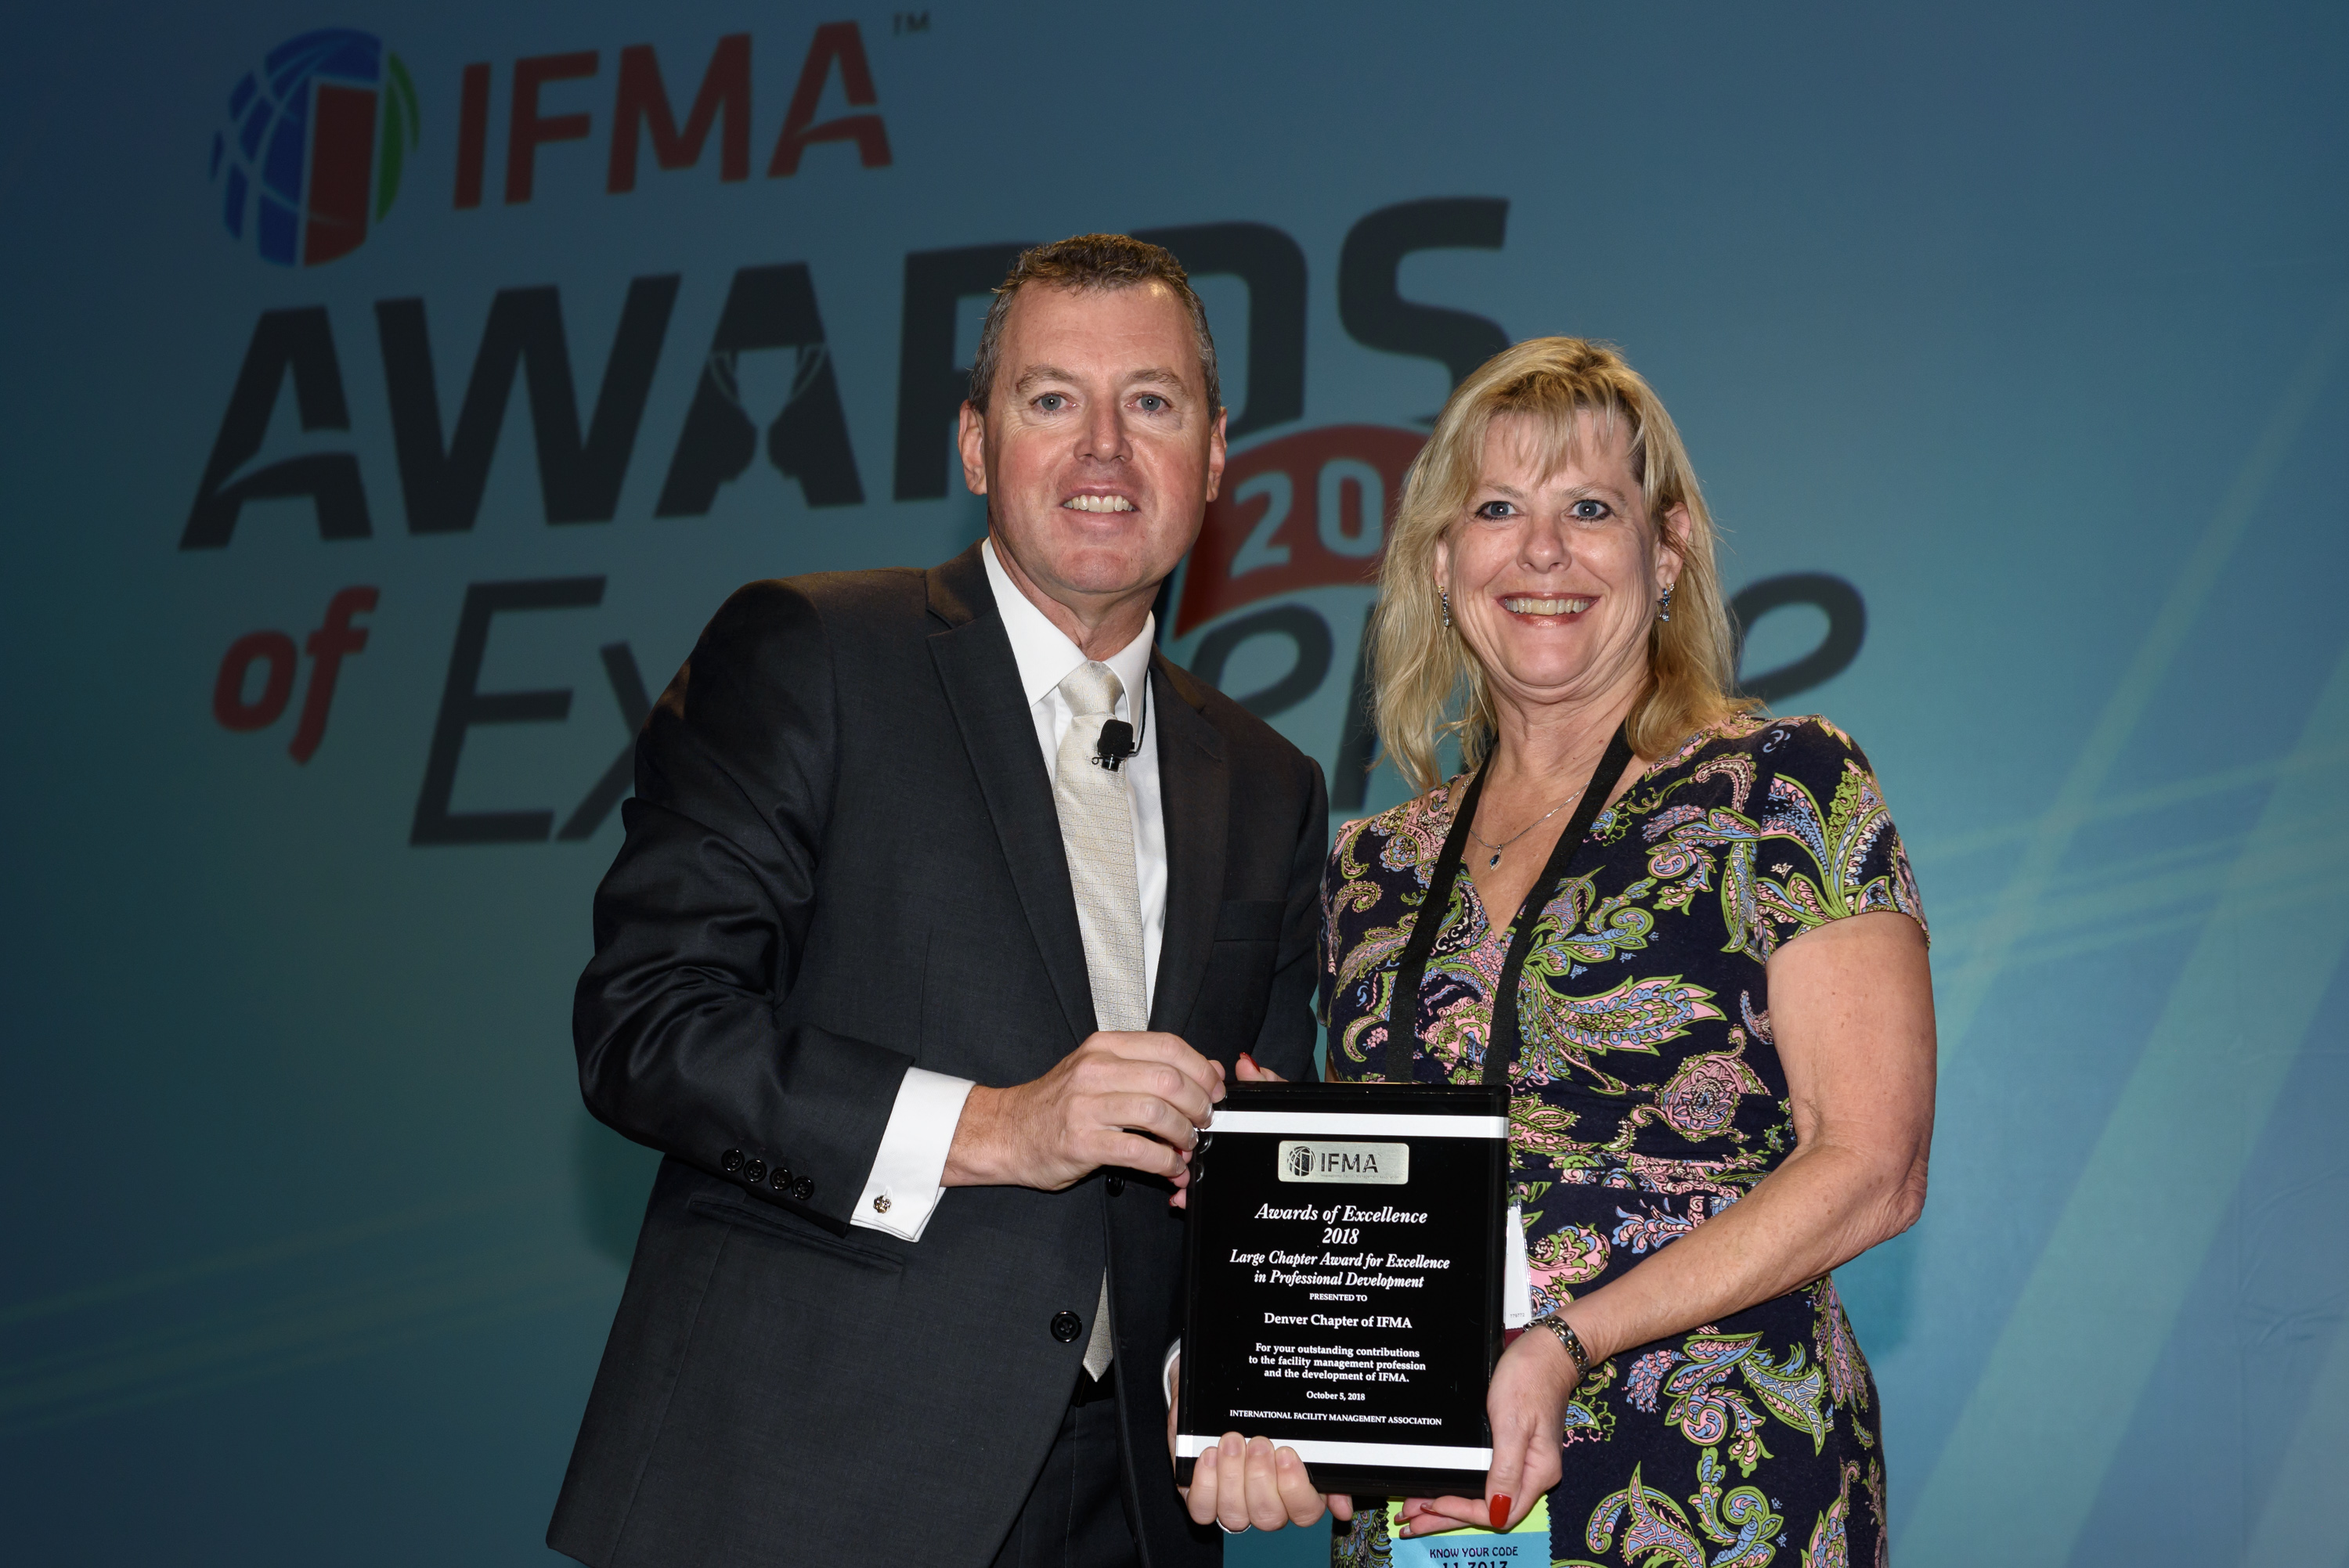 Denver Chapter of IFMA receives Large Chapter Award of Excellence in Professional Development